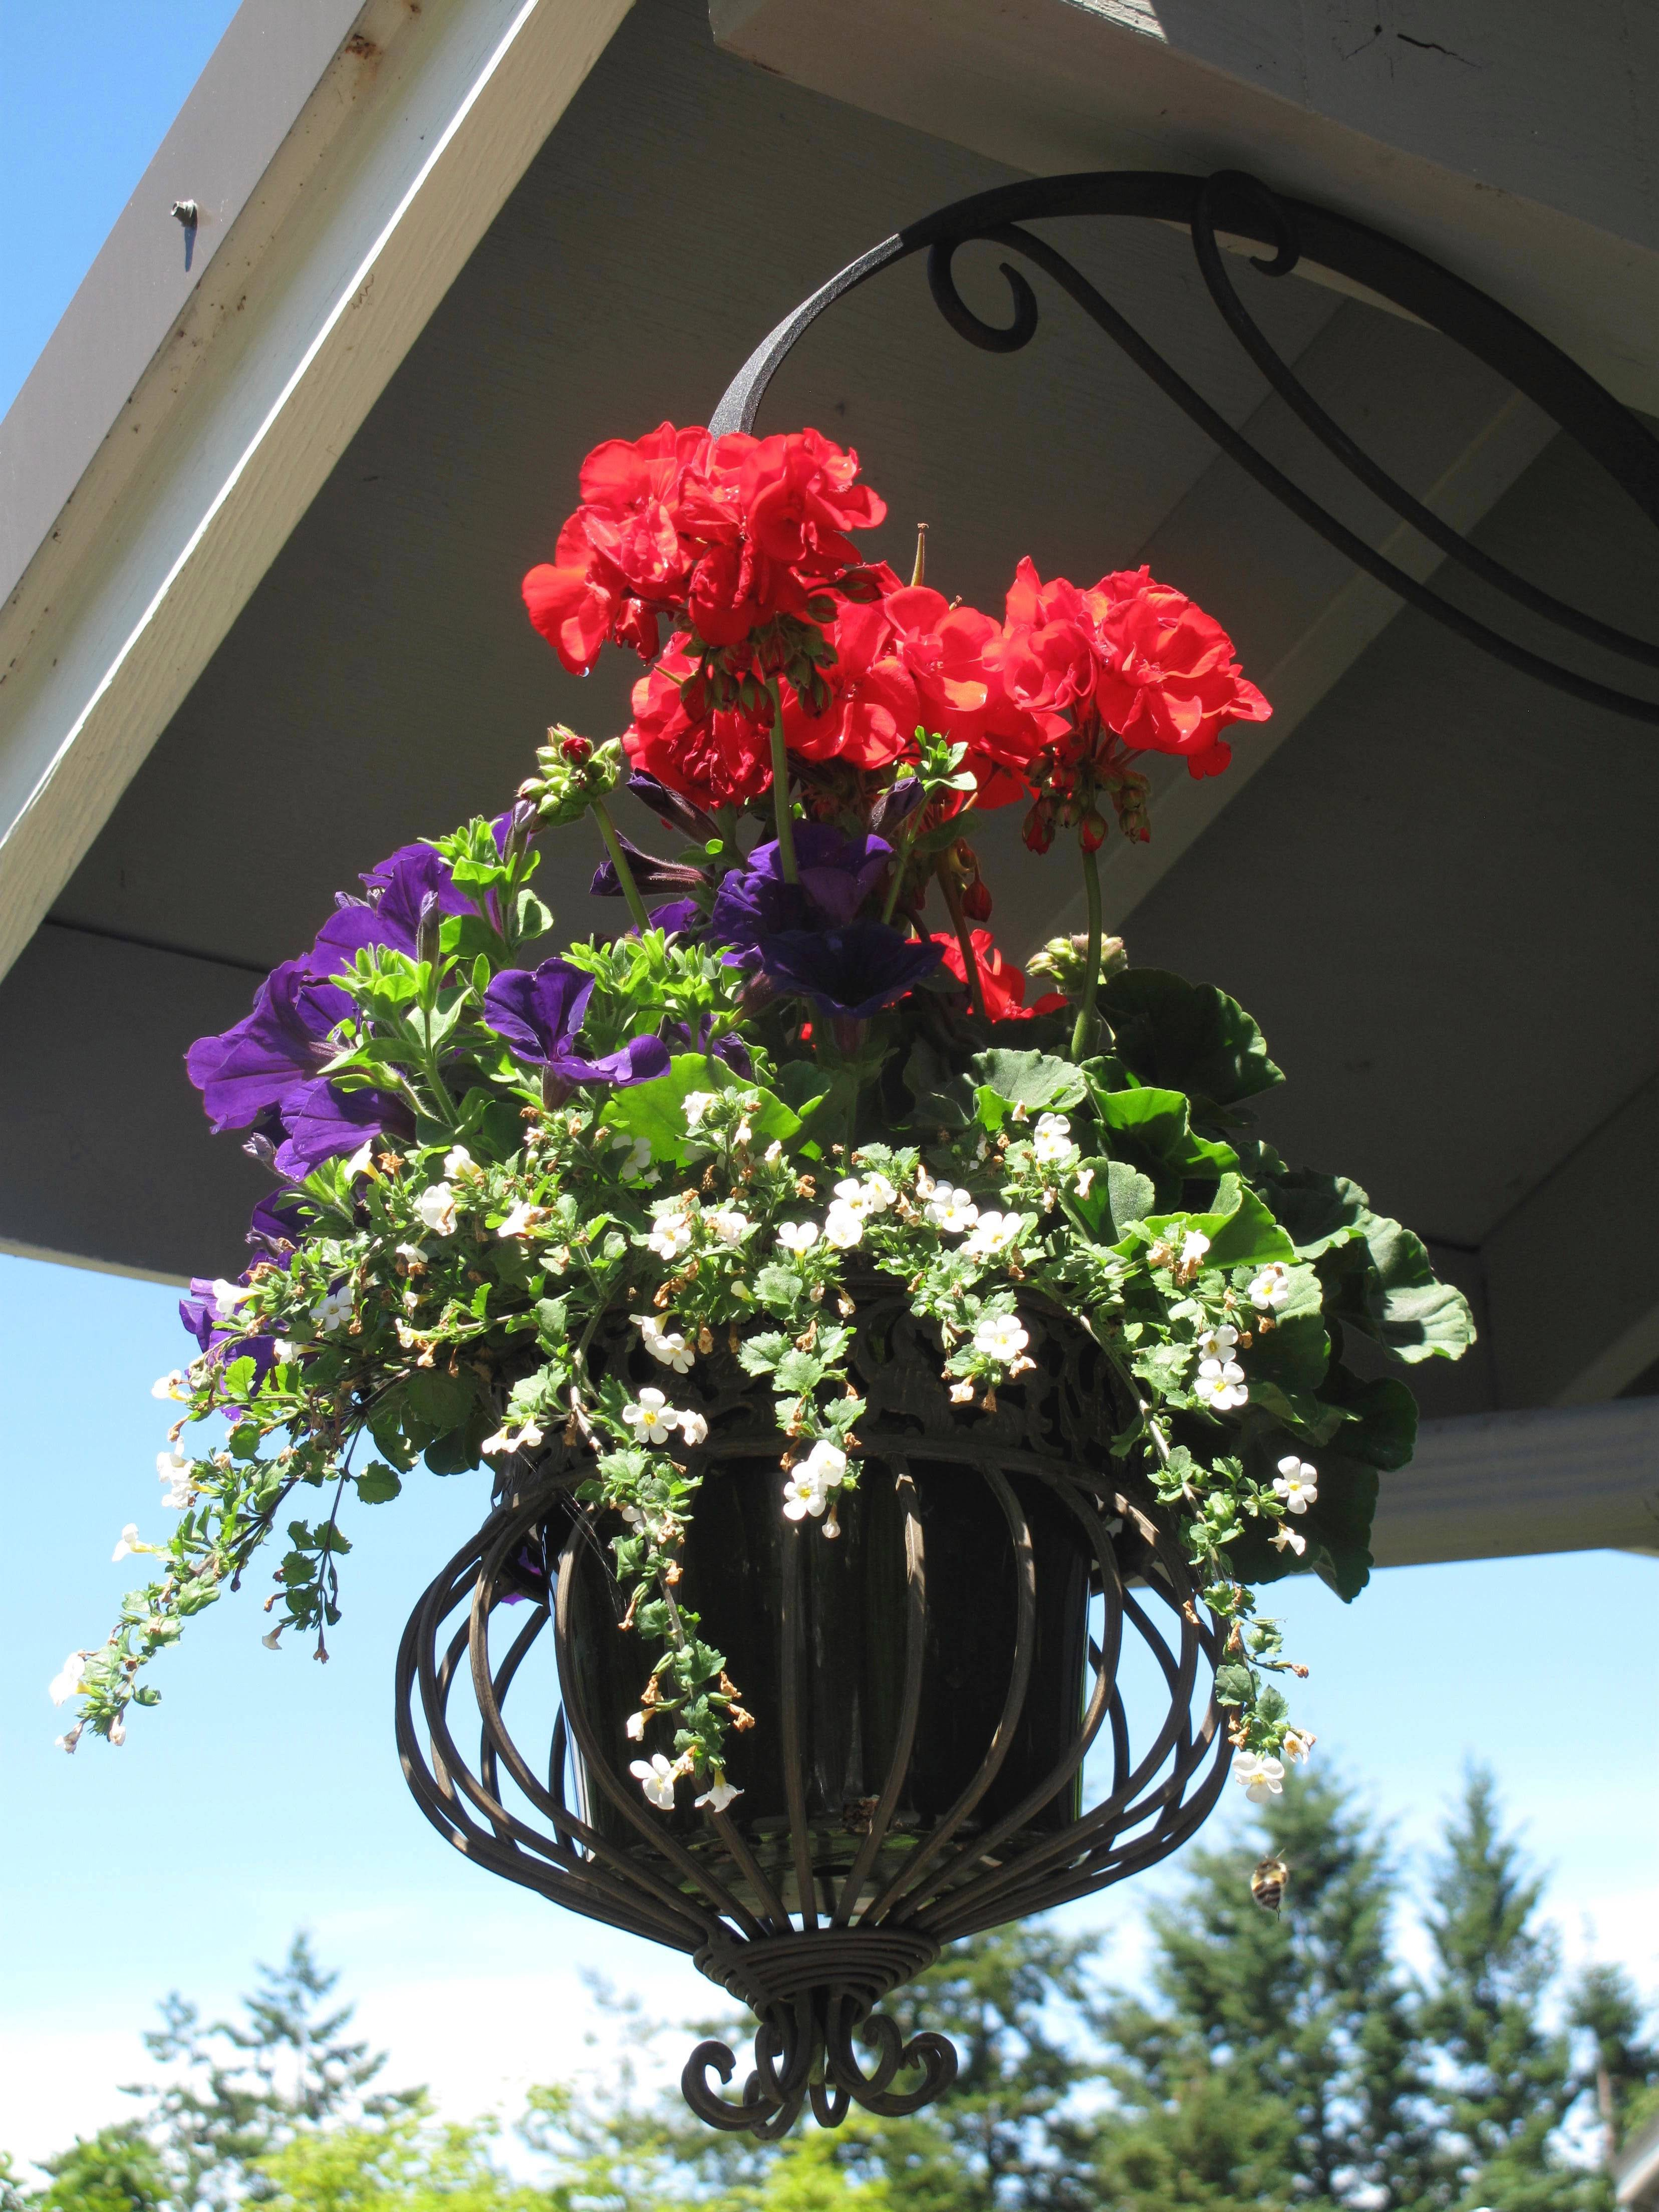 Hanging baskets on a carport make for a colorful welcome as visitors pull into the yard. Shop around at thrift or antique shops for decorative containers like this Victorian model to add some personality to the presentation.